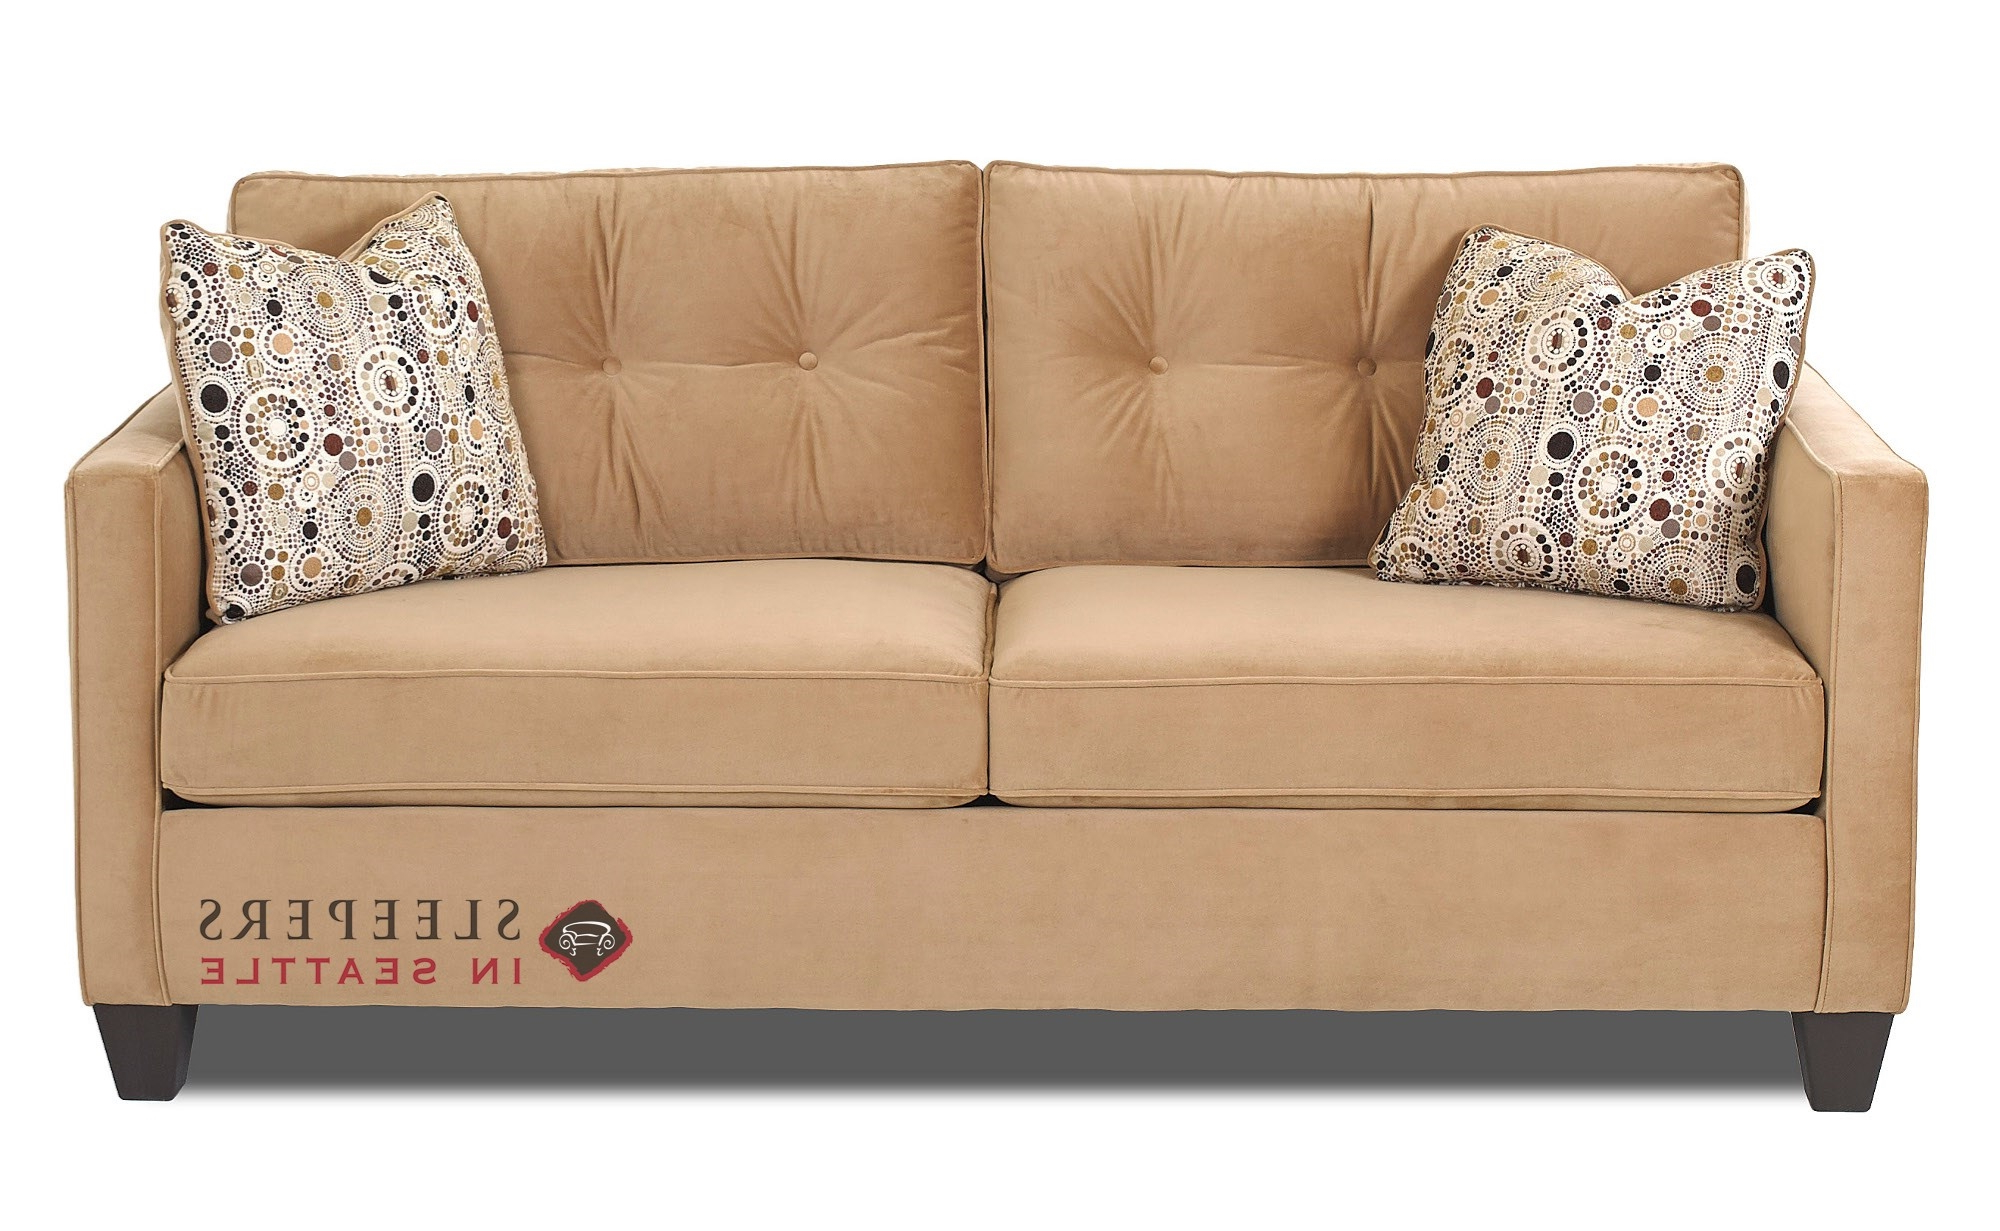 Widely Used Savvy Bristol Queen Sleeper Sofa With Bristol Loveseats With Cushions (View 13 of 20)